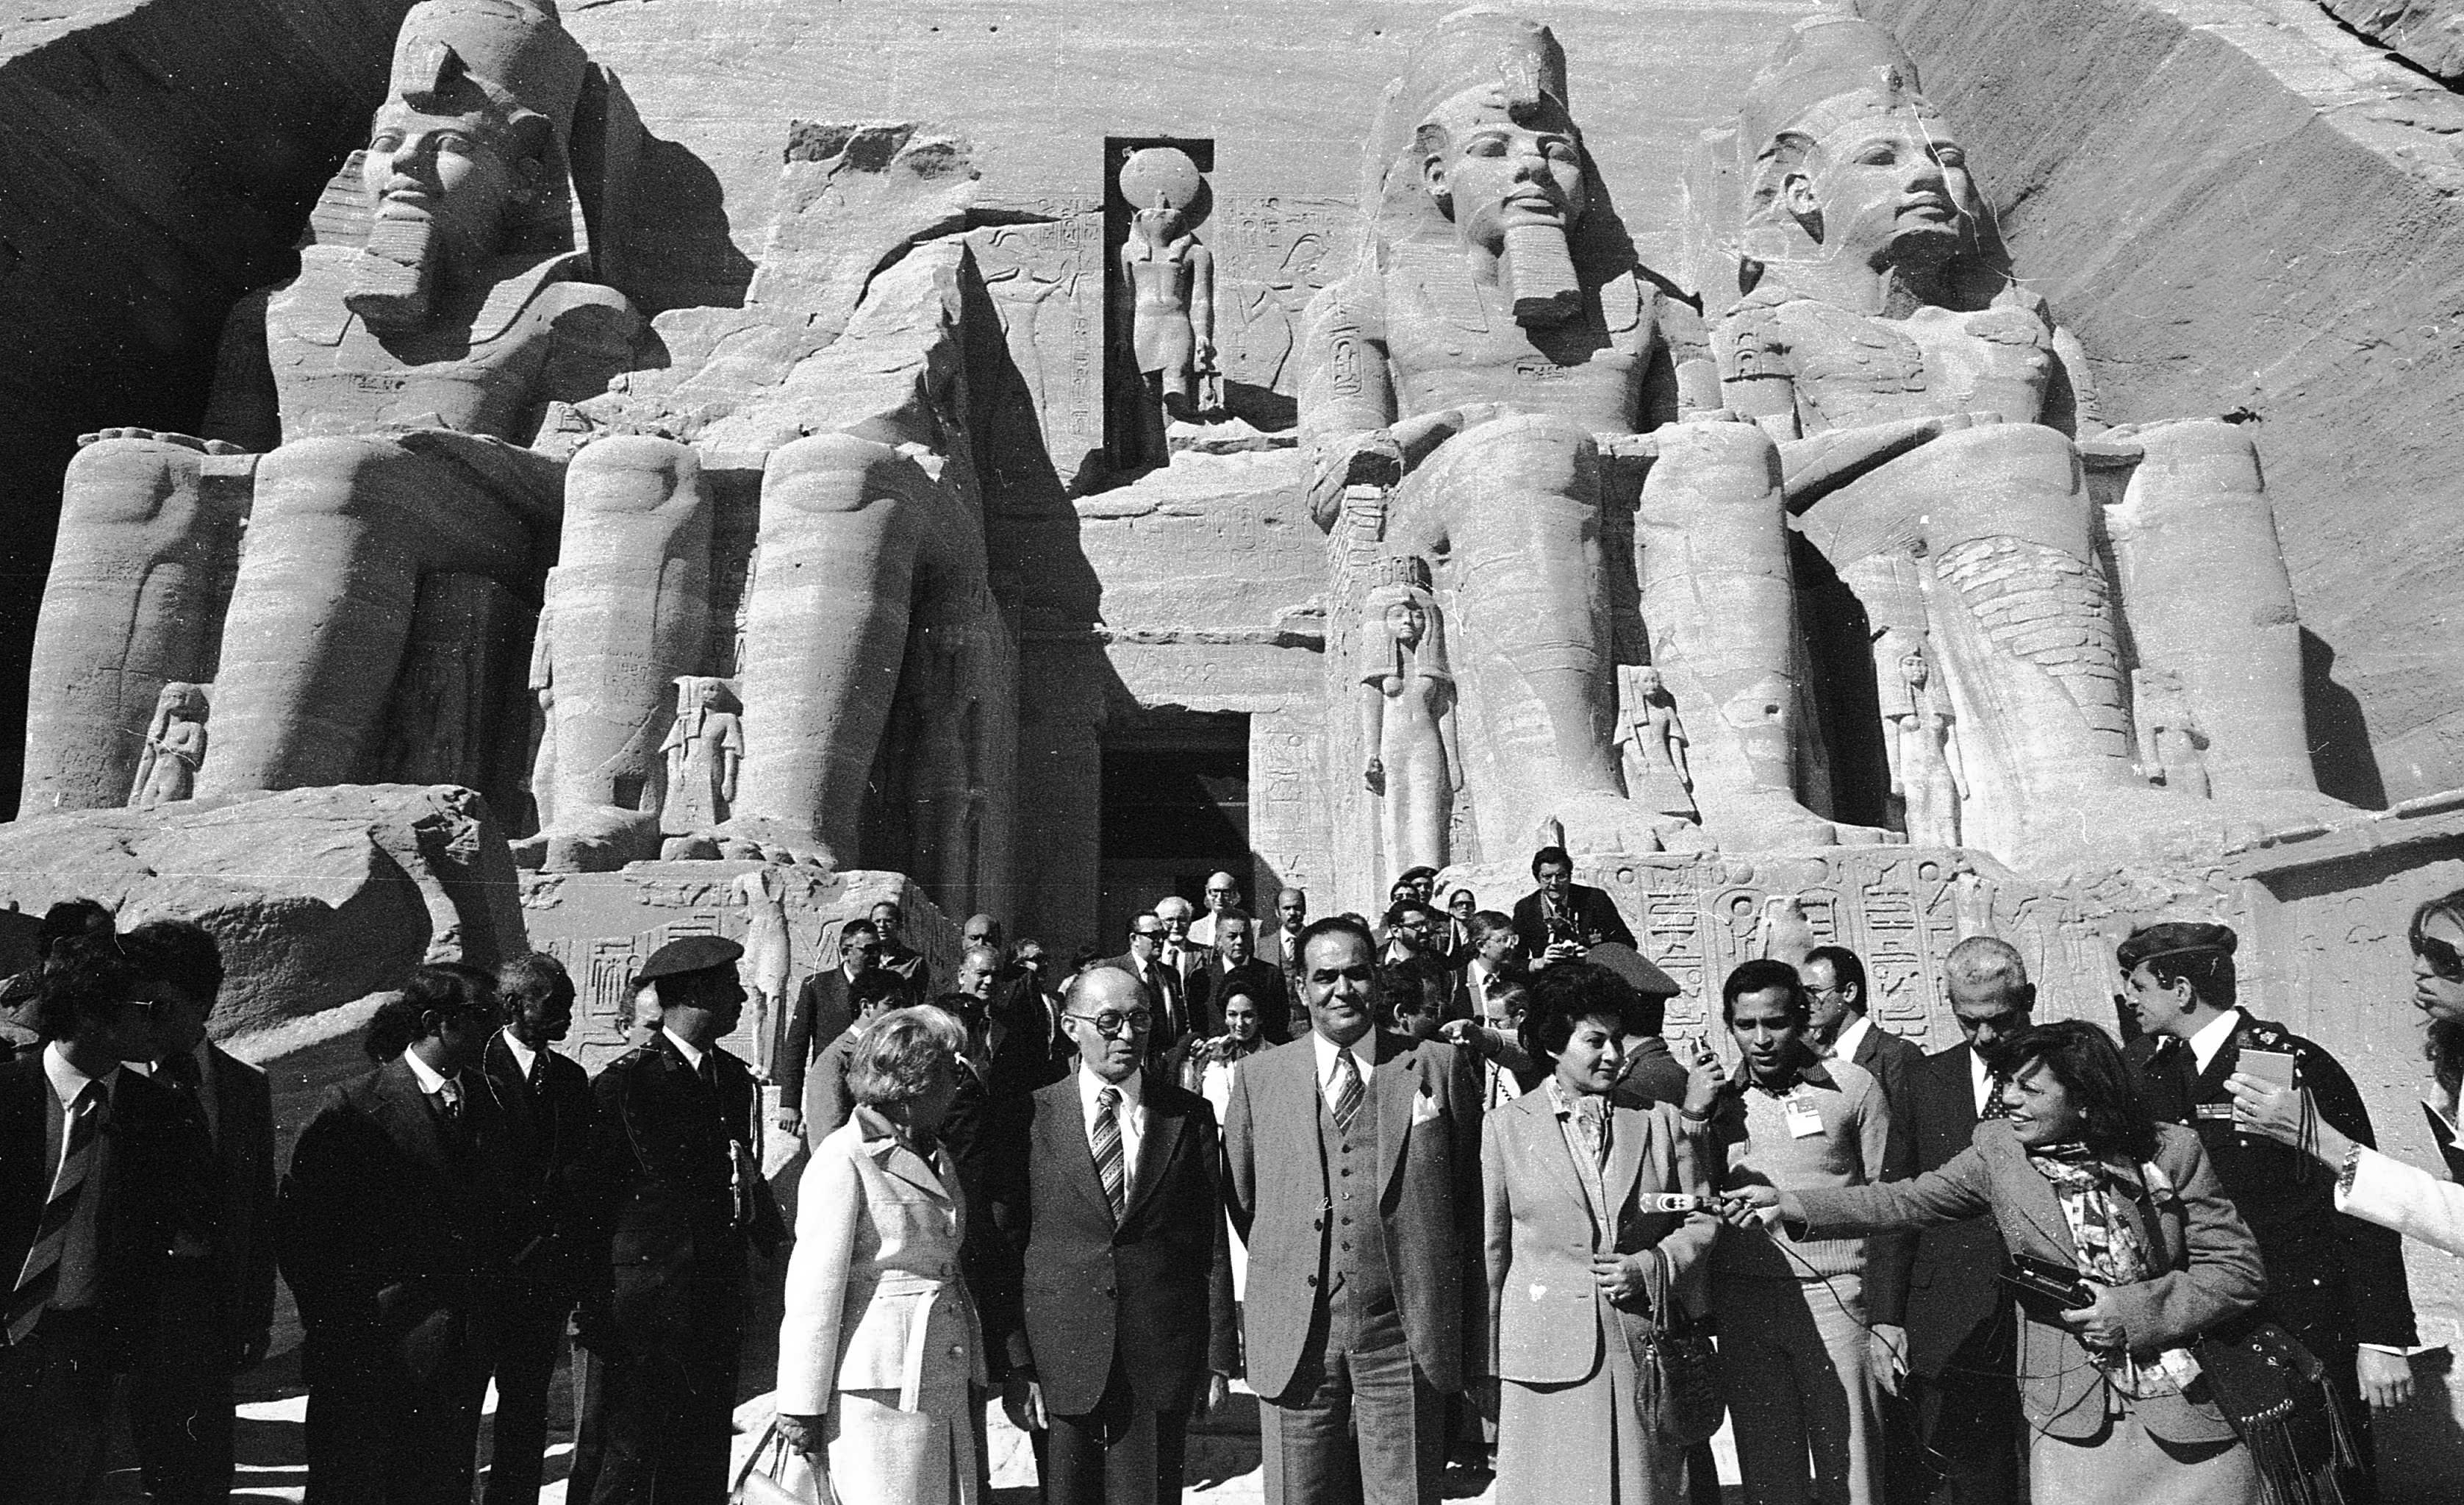 PM Menahem Begin in Egypt to discuss the Peace Process between Egypt and Israel. Photo shows: Visiting Abu Simbel 1980/01/06 Copyright © IPPA 11597-005-06 Photo by [010] Hadani Dan